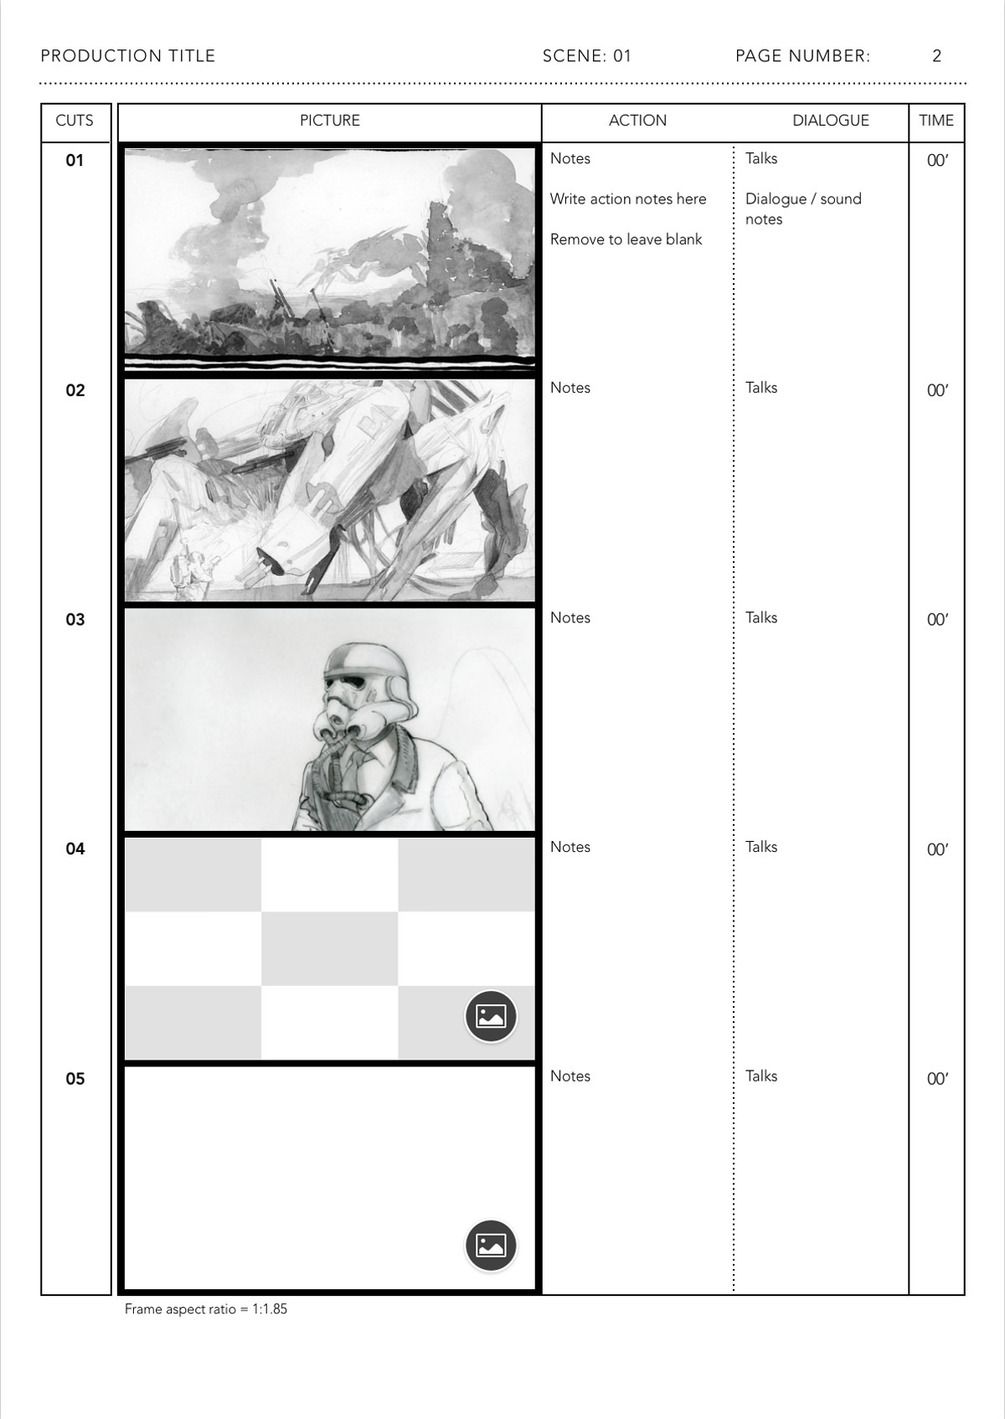 Anime Storyboard Template For Le Pages Ready To Use Five Widescreen Frames 1 85 On Din A4 Vertical Portrait Page You Can Edit This File